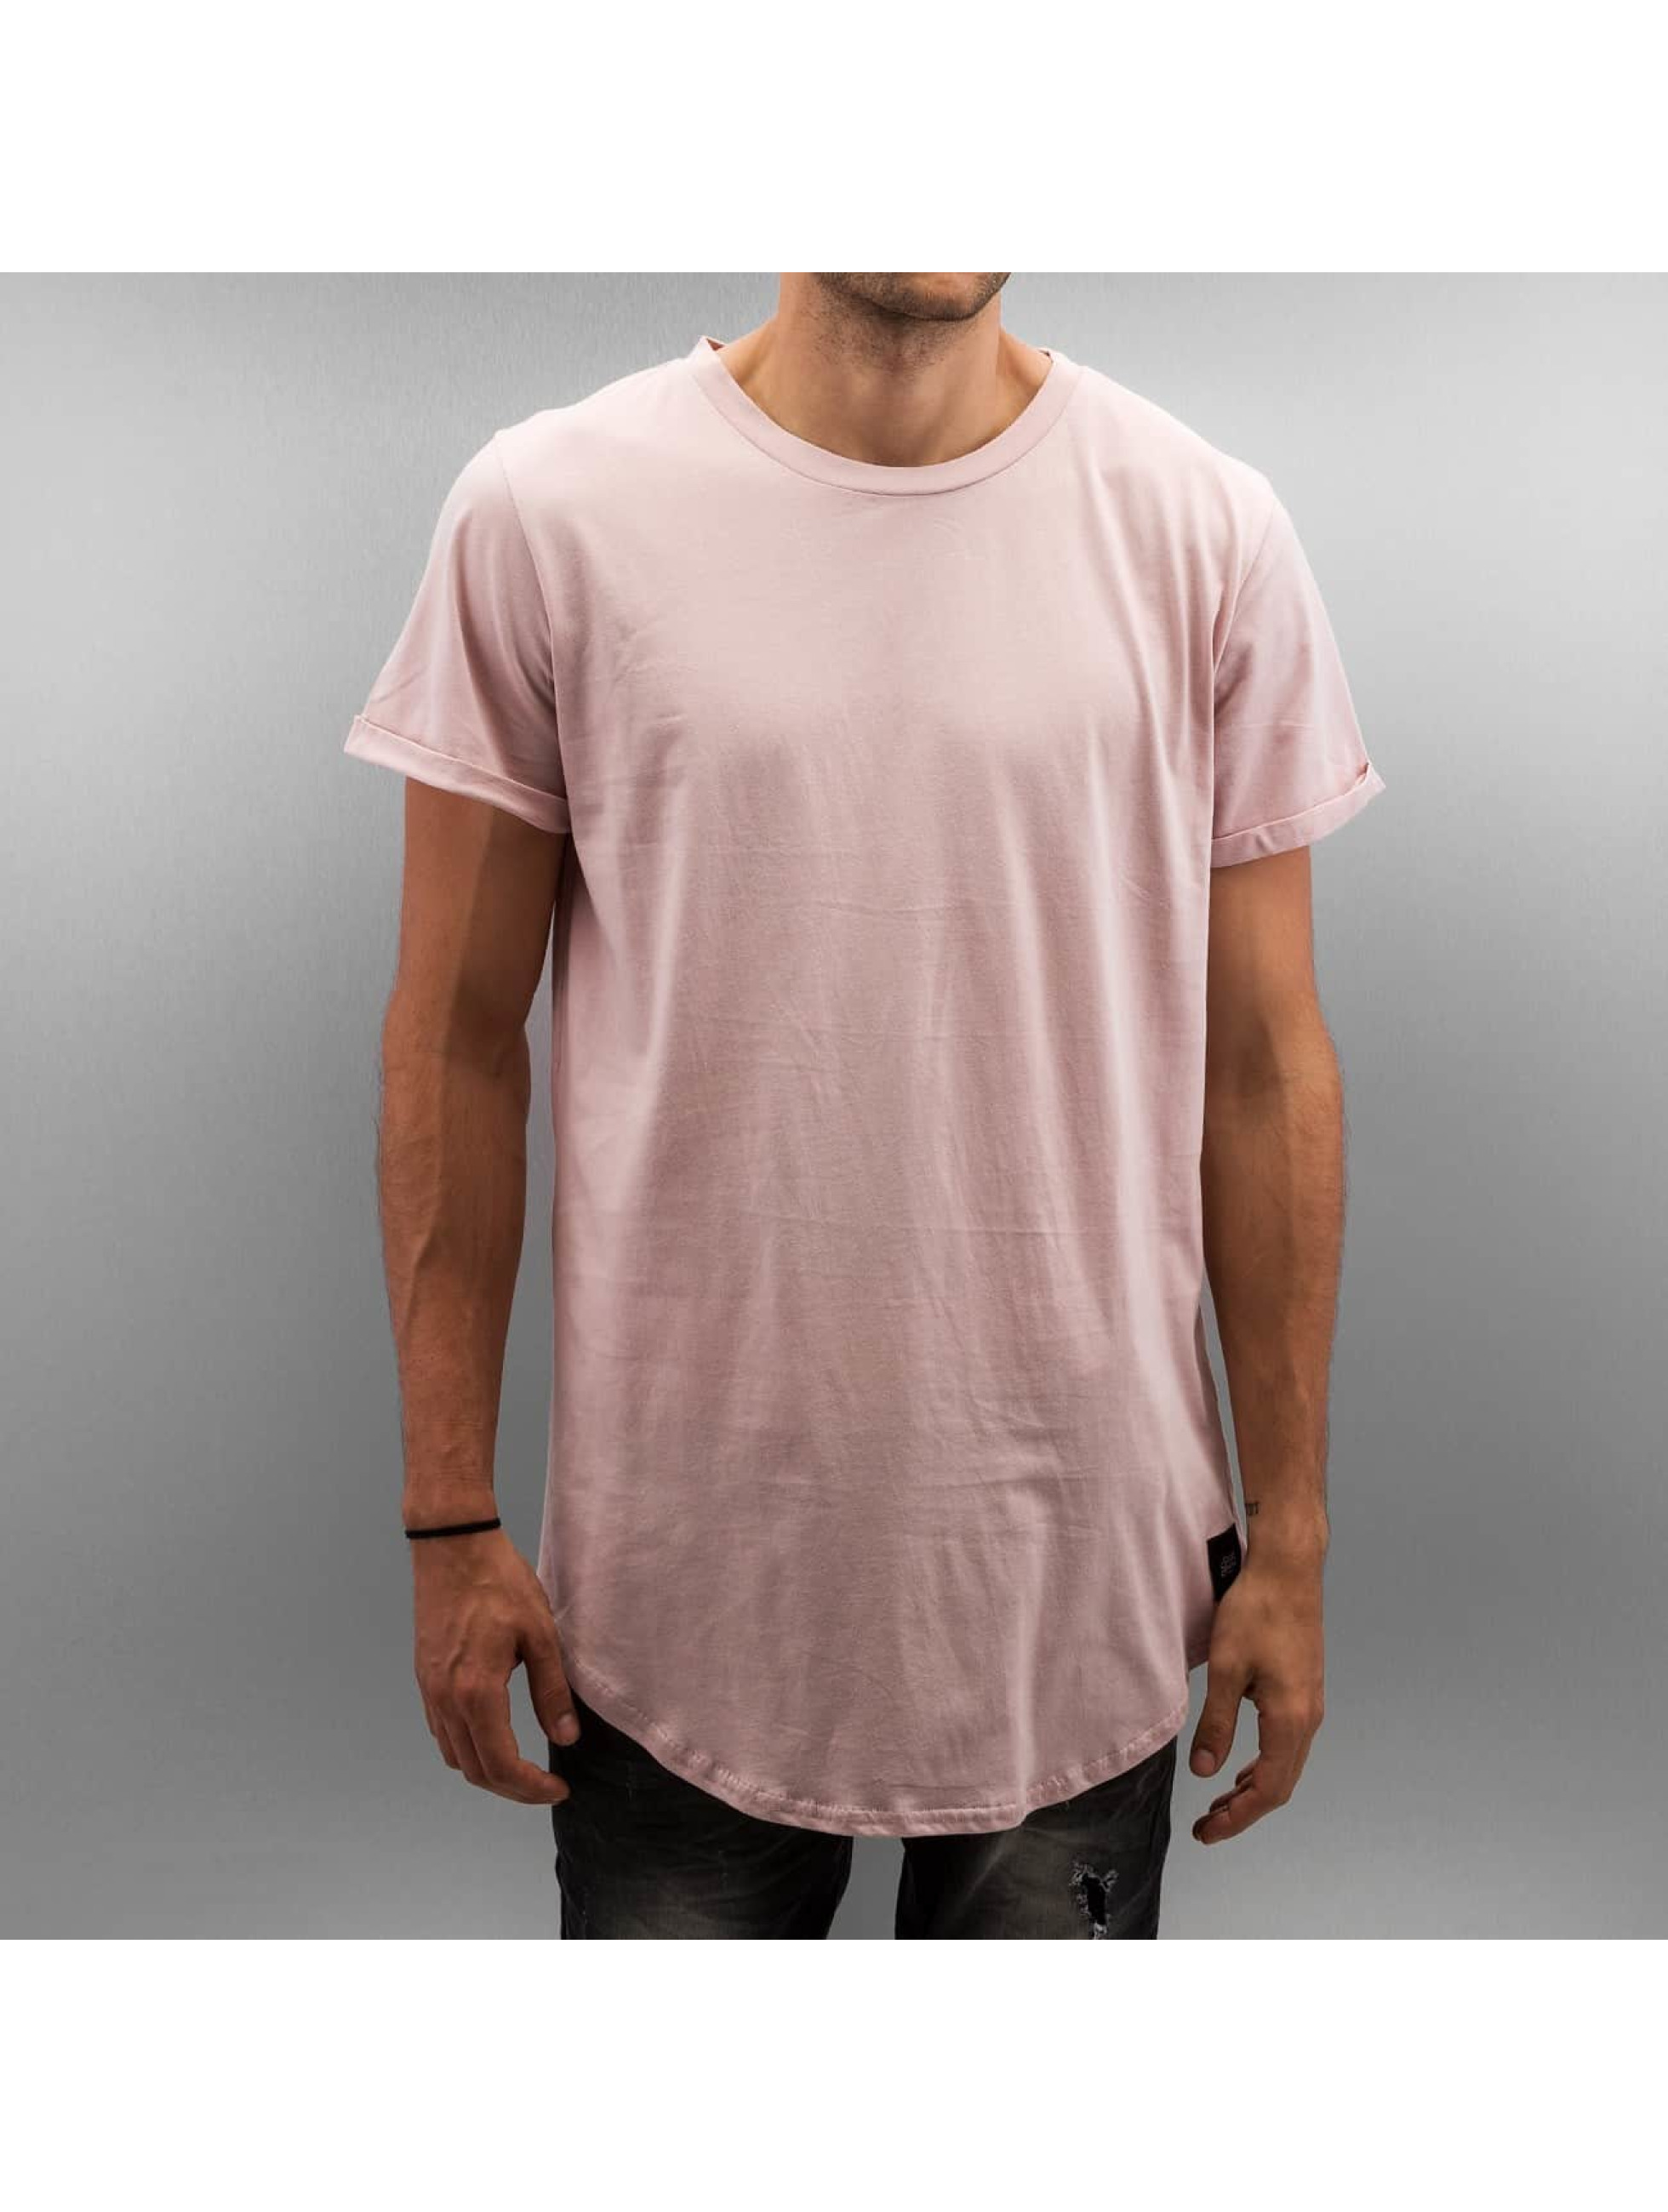 Sixth June Haut / Tall Tees Rounded Bottom en rose